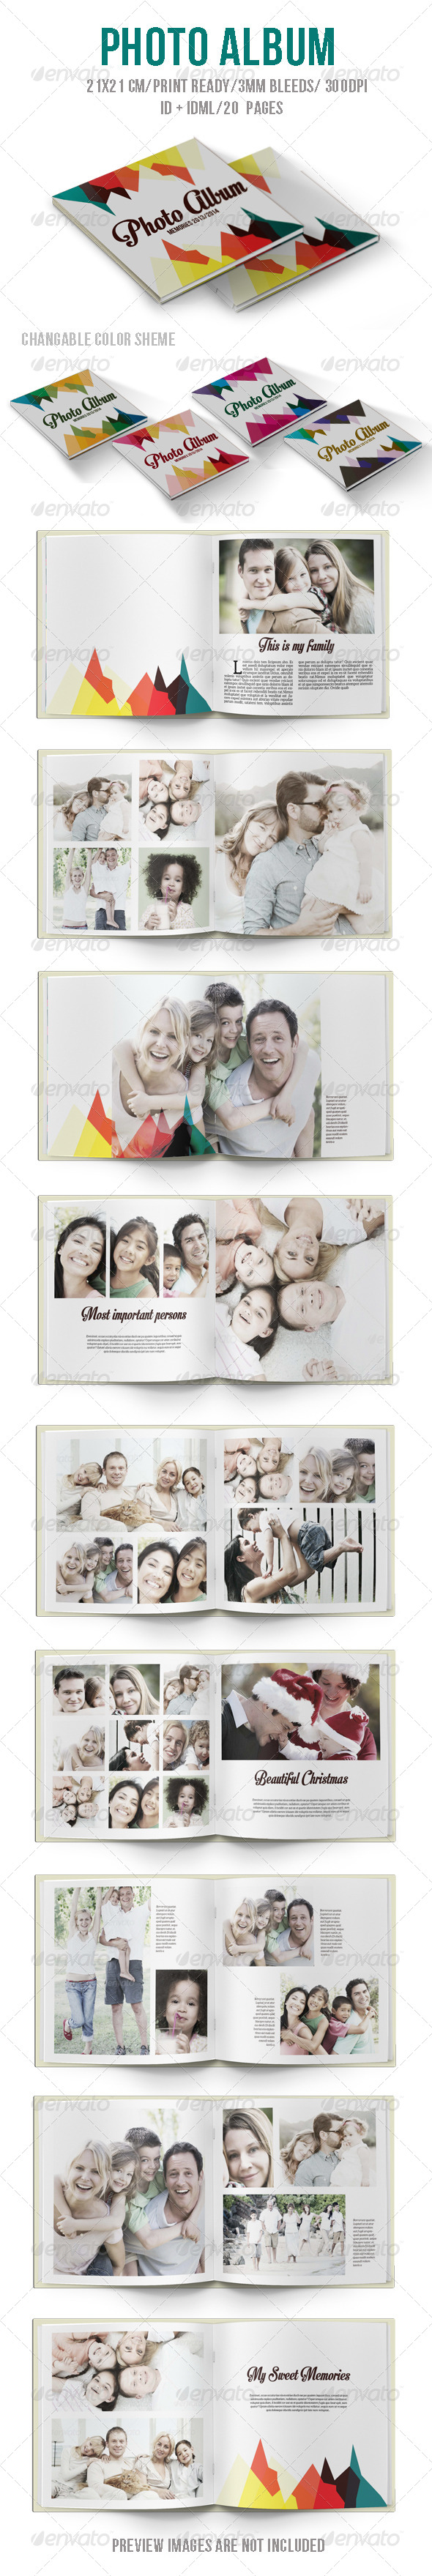 Colorful Photo Album - Photo Albums Print Templates